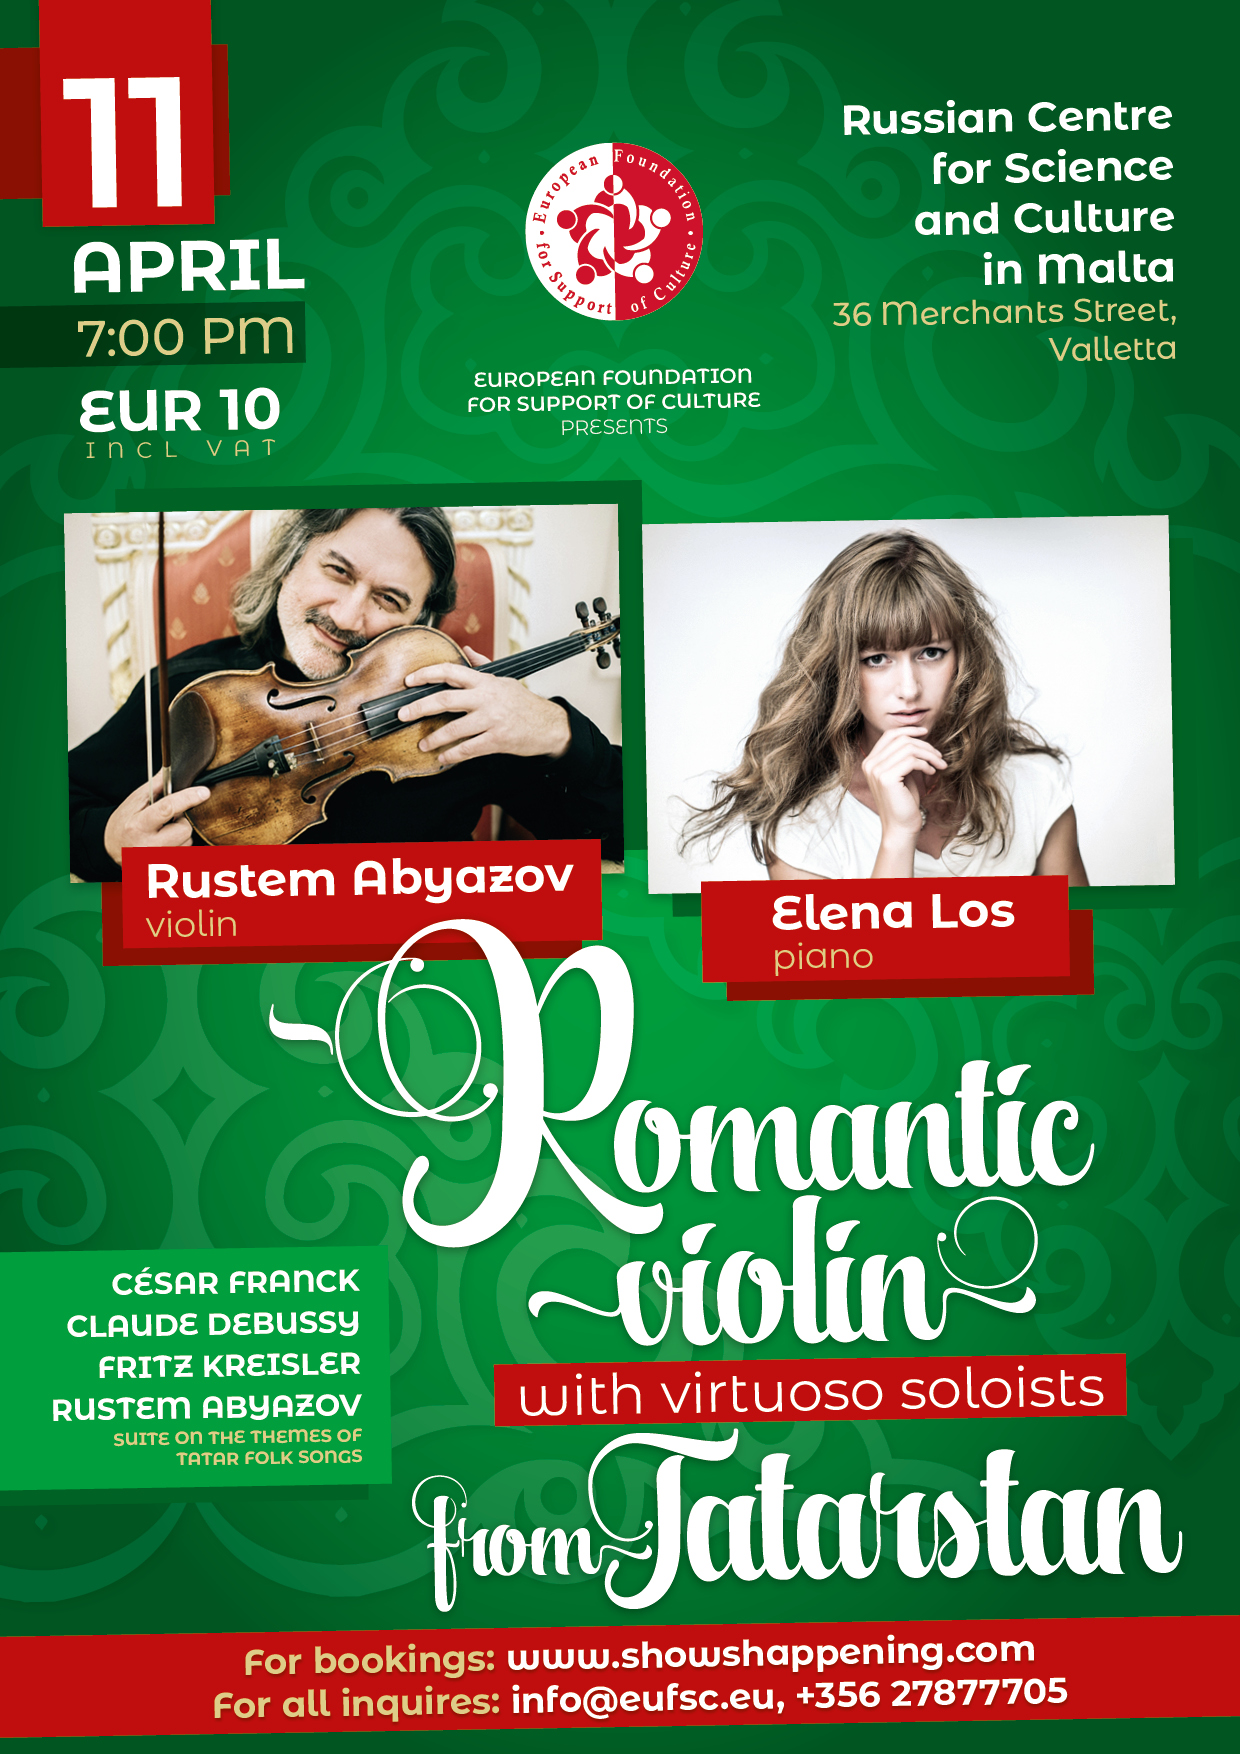 """""""Romantic violin"""" with virtuoso soloists from Tatarstan flyer"""